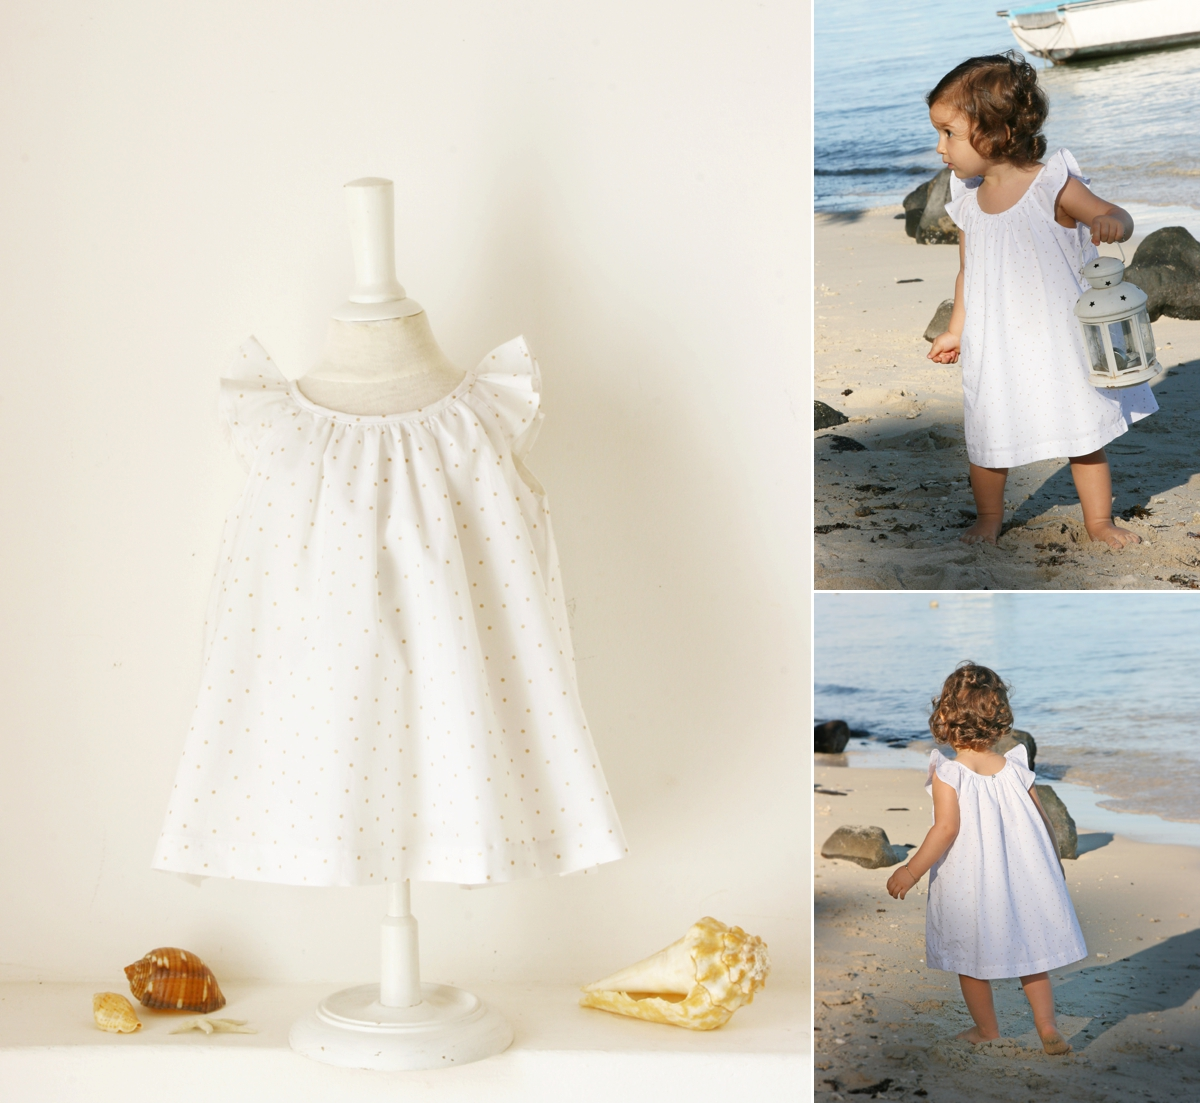 7bbbfa391c75 baby cotton dress with golden dots Little eglantine - Stylish Outfits for  Children at Weddings by. ""